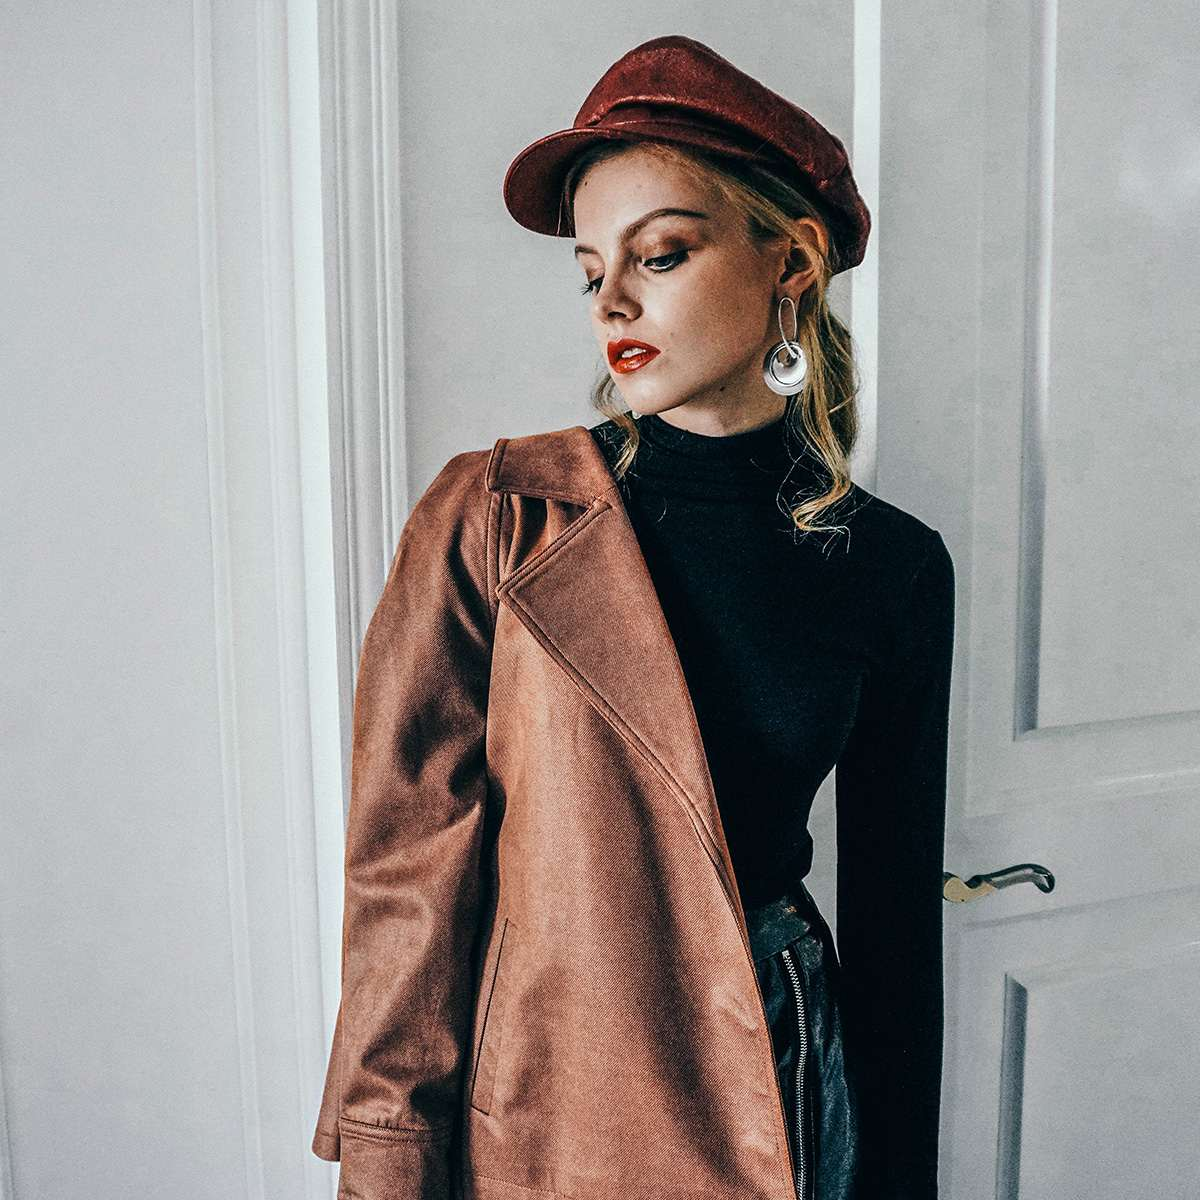 Clothes 2018 Vintage Faux Outwear Women Sleeve Jacket Basic Winter Coat Belted Long Brown Solid Slim Suede Leather Short xw4pgTU